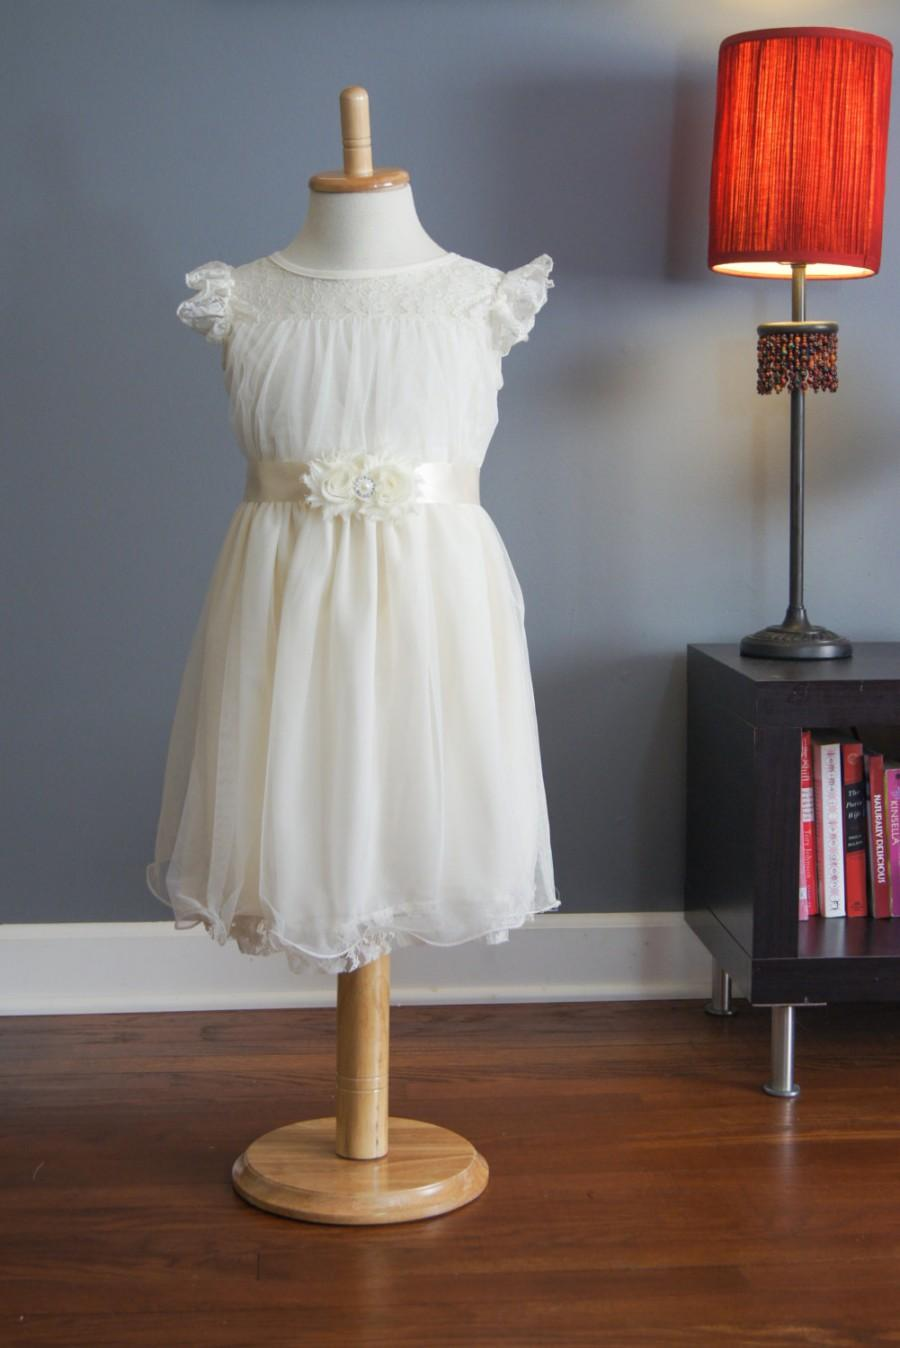 Wedding - Ariana Ivory Flower girl Dress Girls Dress Toddler Dress lace Dress With Satin Ribbon Sash